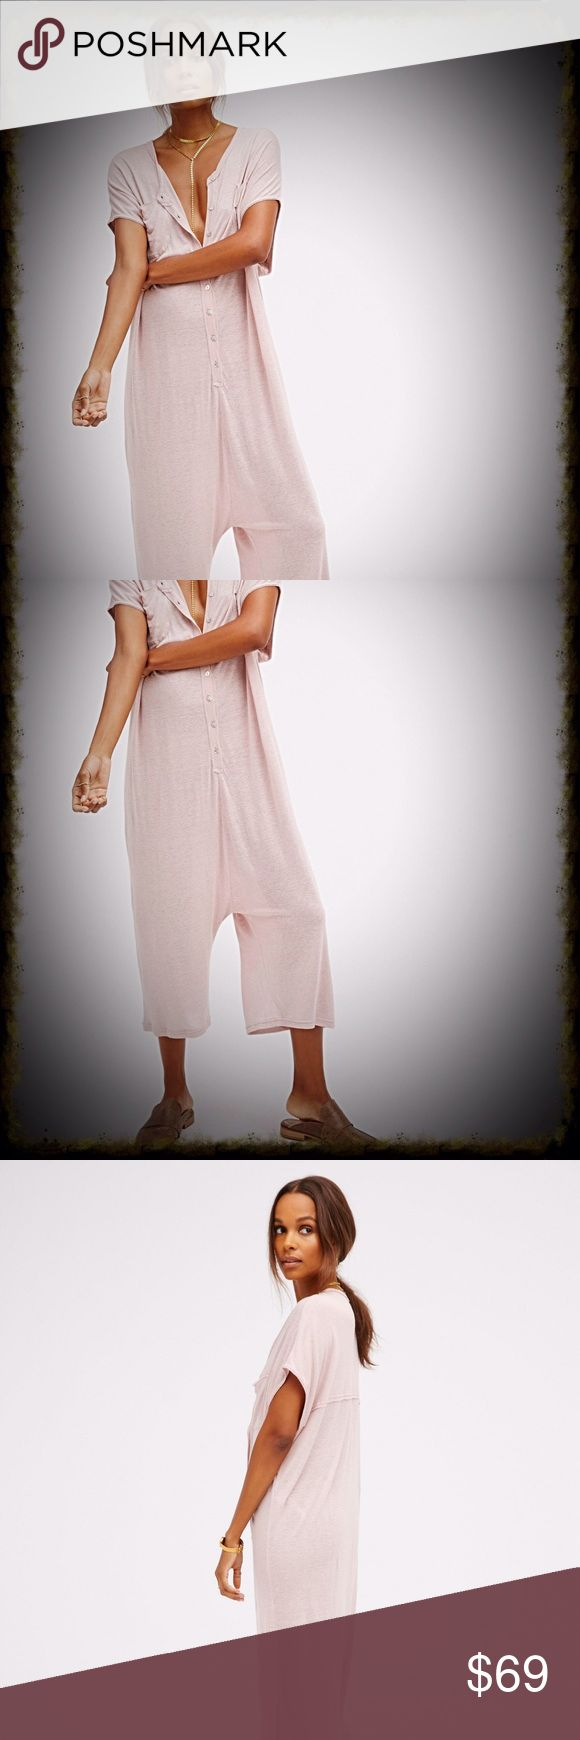 Free People Morocco Rompet Oh-so-soft and cozy oversized romper with a cropped leg. Features exposed button closures along the front and a cute two-pocket detail. Semi-sheer fabrication. Throw on as a cover-up over your favorite swimwear or over one of our seamless rompers for an easy effortless look.   *By FP Beach *70% Rayon *30% Linen *Genuine Shell Buttons *Hand Wash Cold *Import.   Color. Soft blush nude color. * worn once. In excellent just like new cond  oversized Slouchy fit…